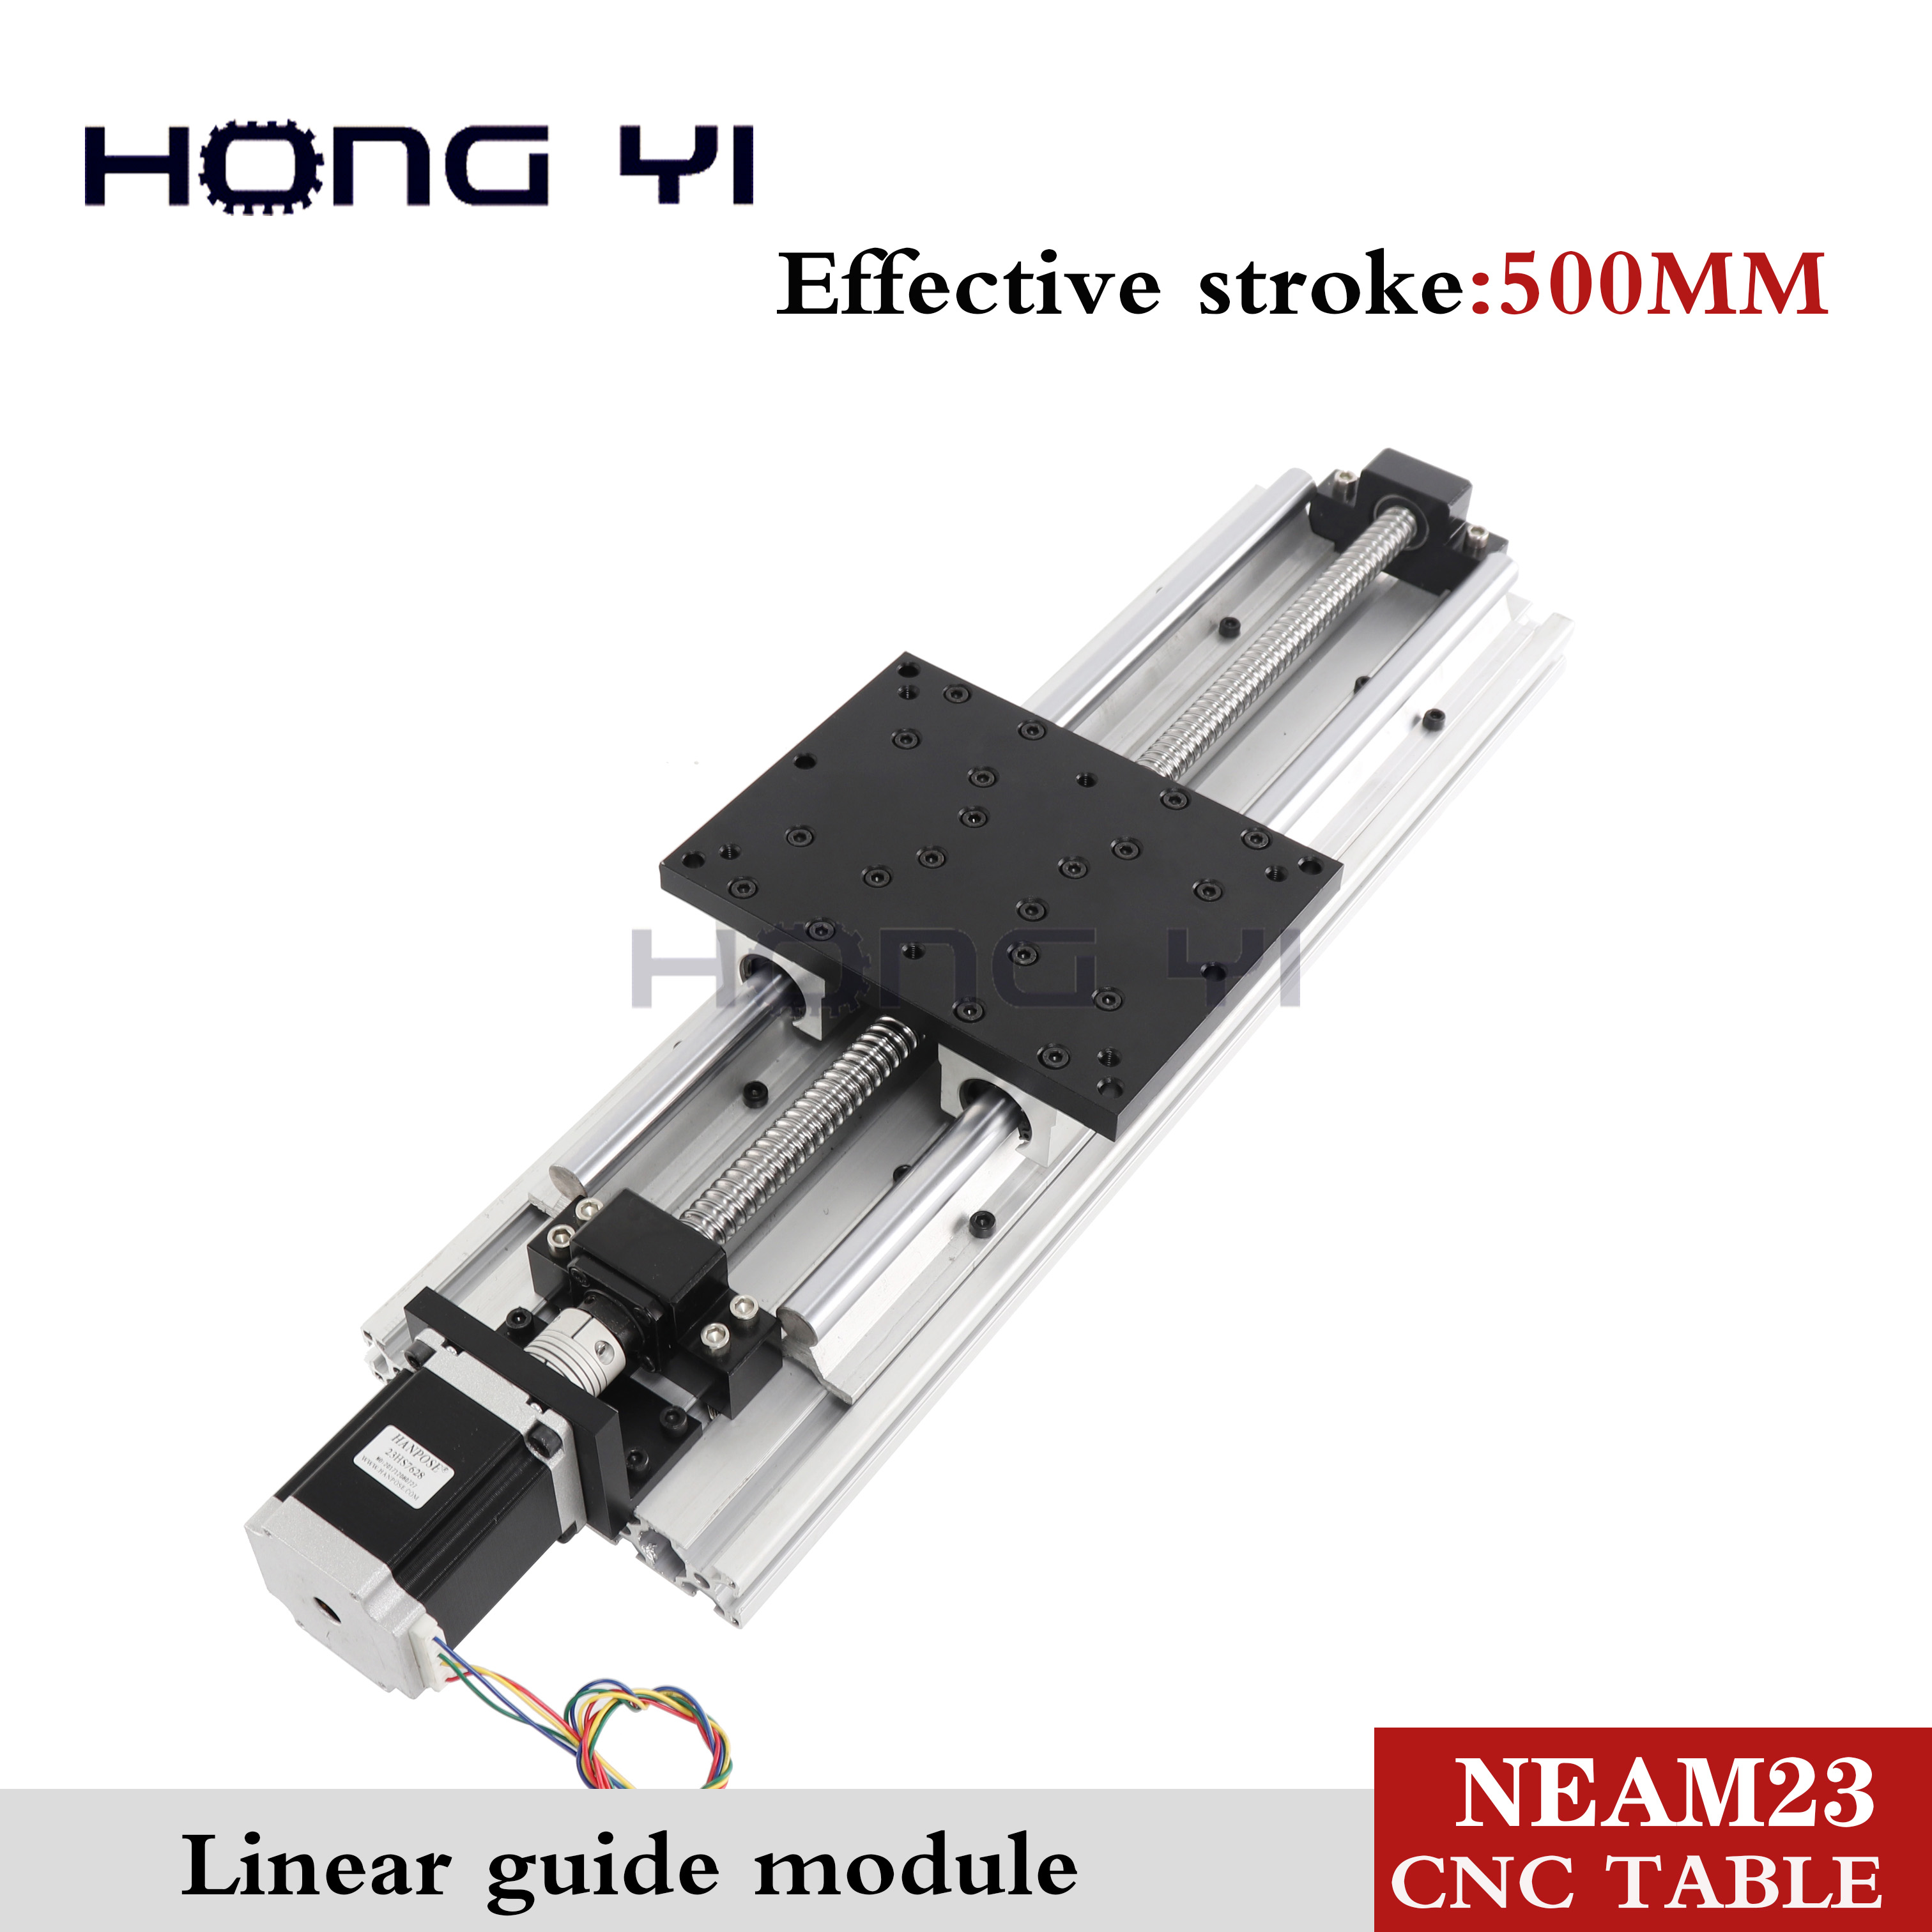 Best prices !! Linear Modules effective stroke 500mm Linear Guides SBR16 Ball screw NEMA 23 stepper motor for CNC table